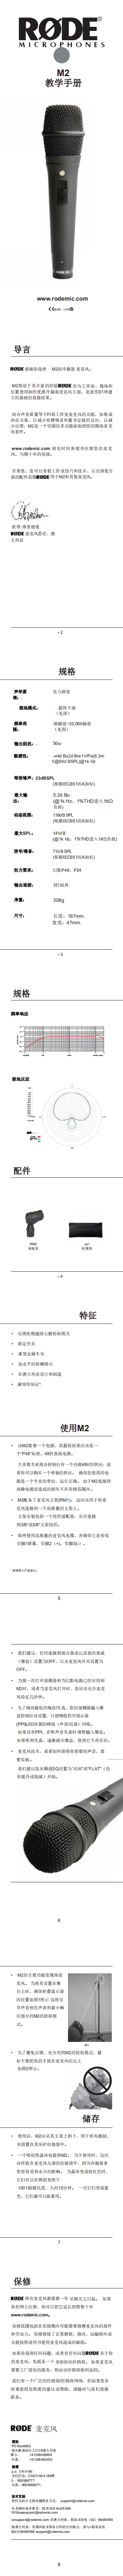 M2_product_manual_translate_Chinese_0.png